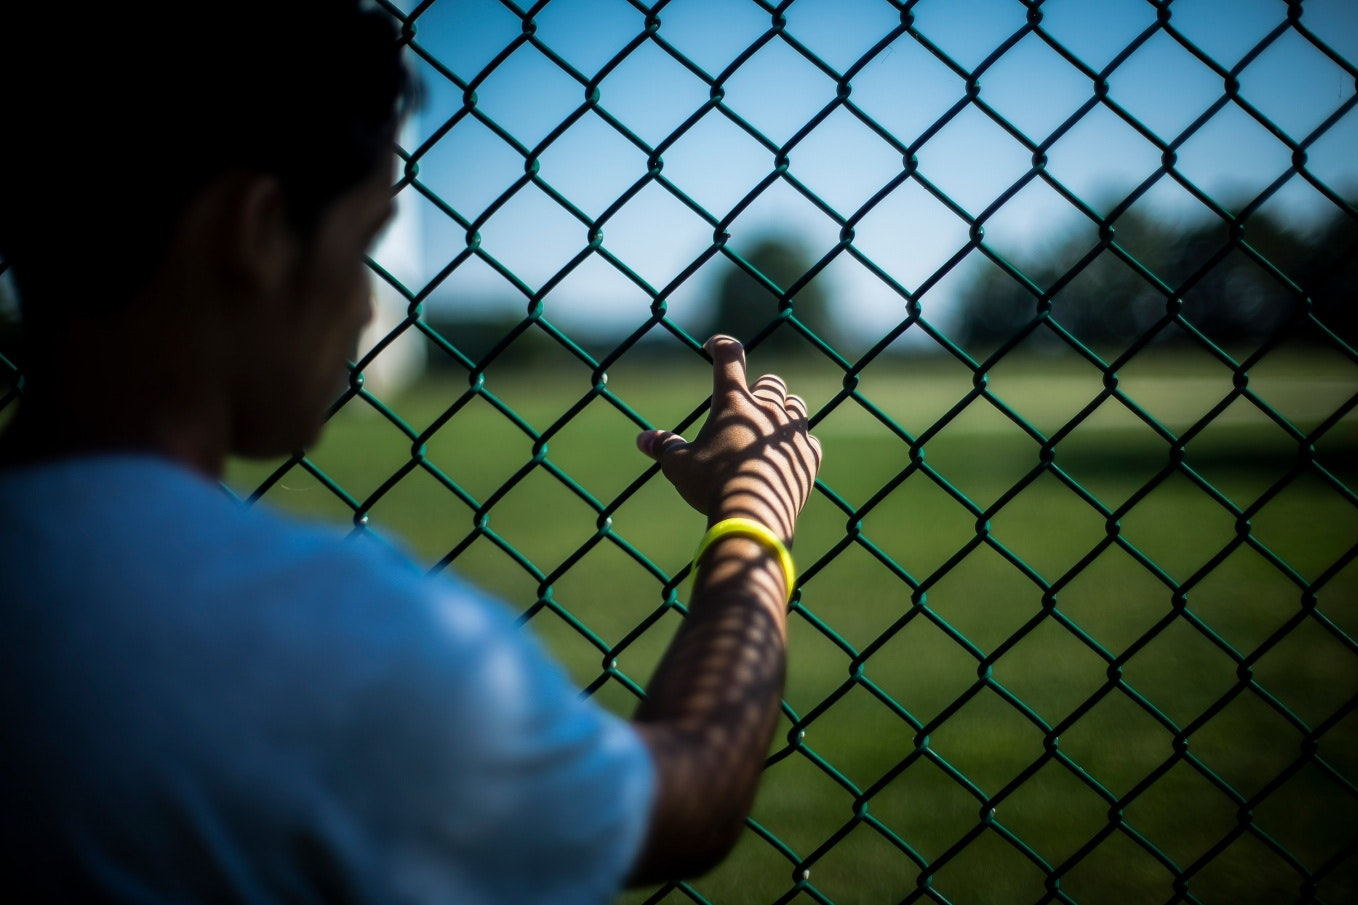 A hand on a chain link fence